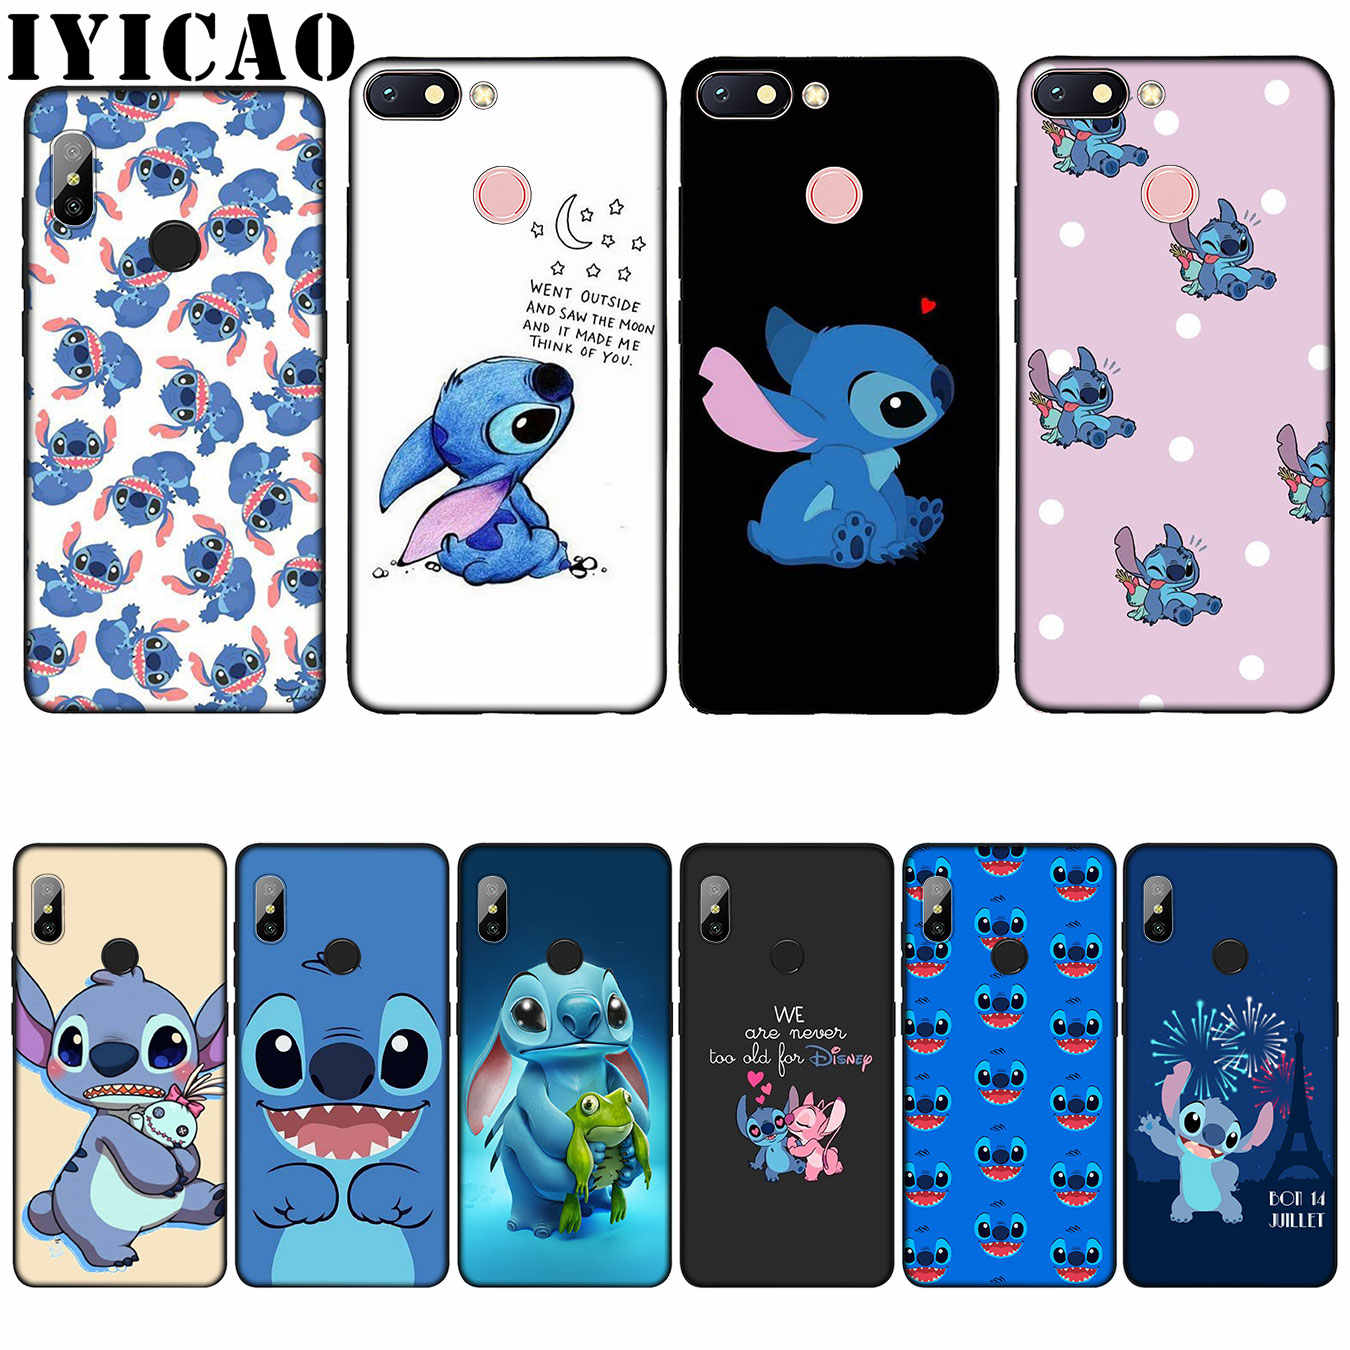 IYICAO Cute Stich Cartoon Silicone Soft Case voor Xiaomi Redmi 6A 5A Note 8 7 4 4X5 Plus 6 Pro Black TPU Cover